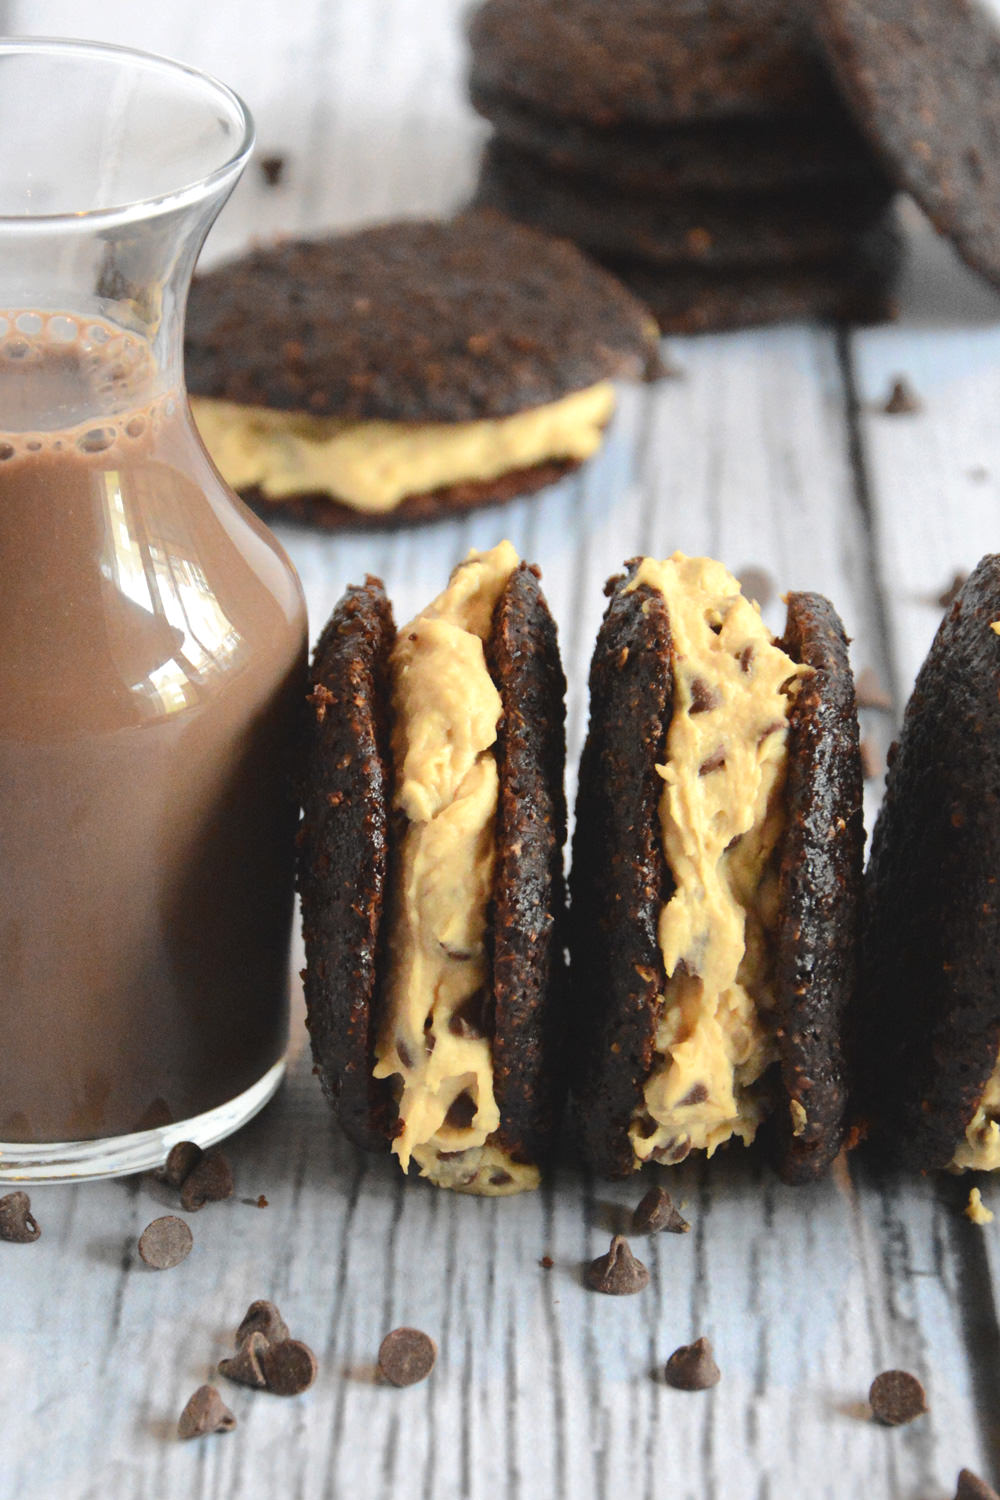 Cookie Dough Stuffed Whoopie Pies are a guiltless treat with a chocolate cookie and stuffed with cookie dough that only seems sinful!